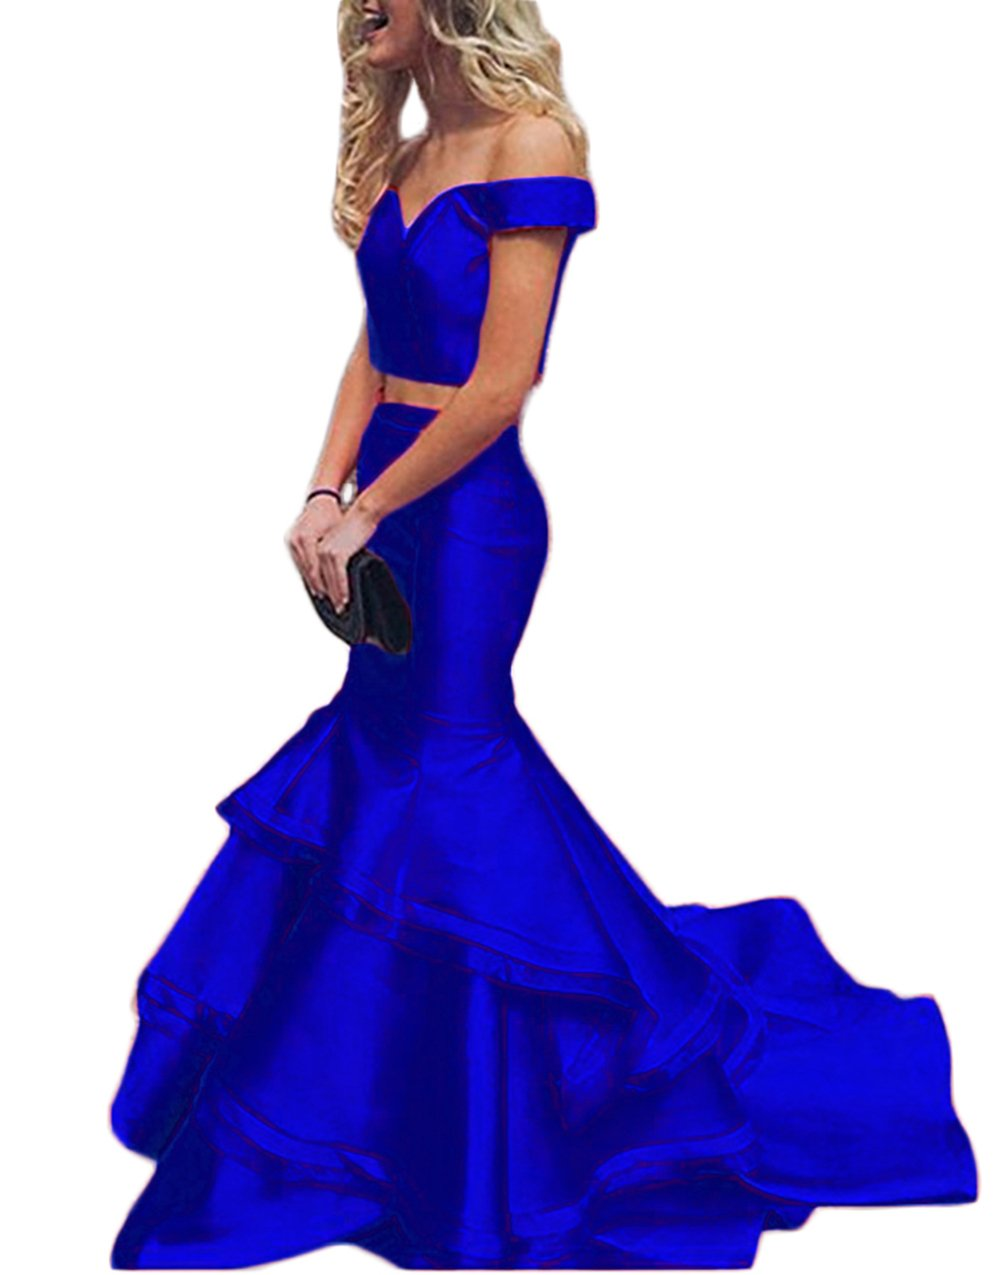 M Bridal Women's Cap Sleeve Off Shoulder 2 Piece Layers Skirt Mermaid Prom Dress Royal Blue Size 12